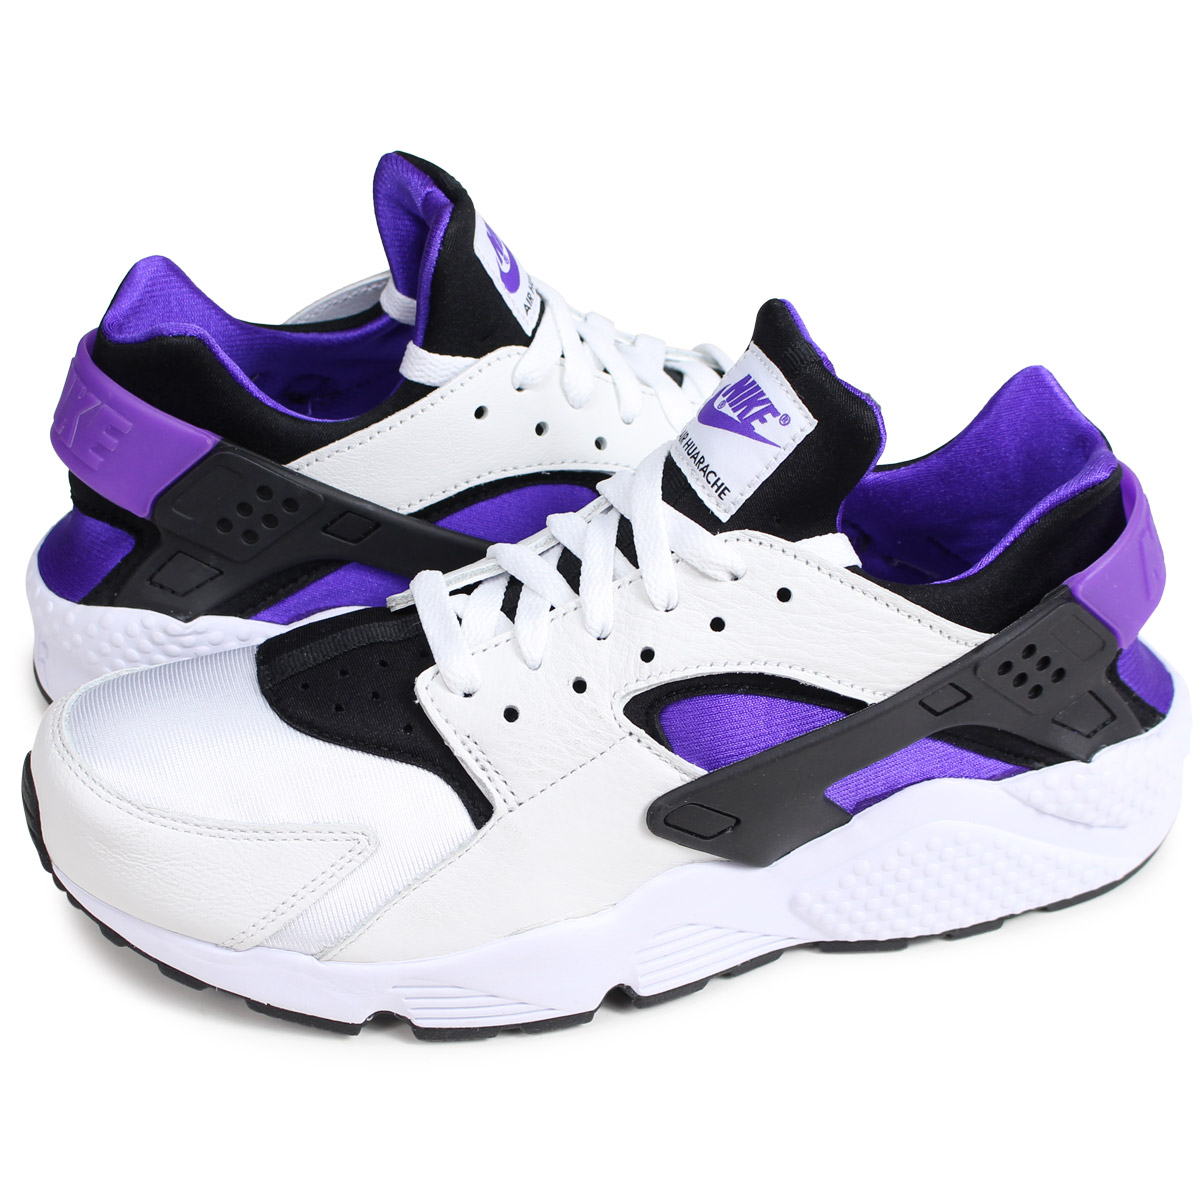 51ae90632924e Nike NIKE エアハラチランスニーカーメンズ AIR HUARACHE RUN 91 QS white AH8049-001  2 27  Shinnyu load